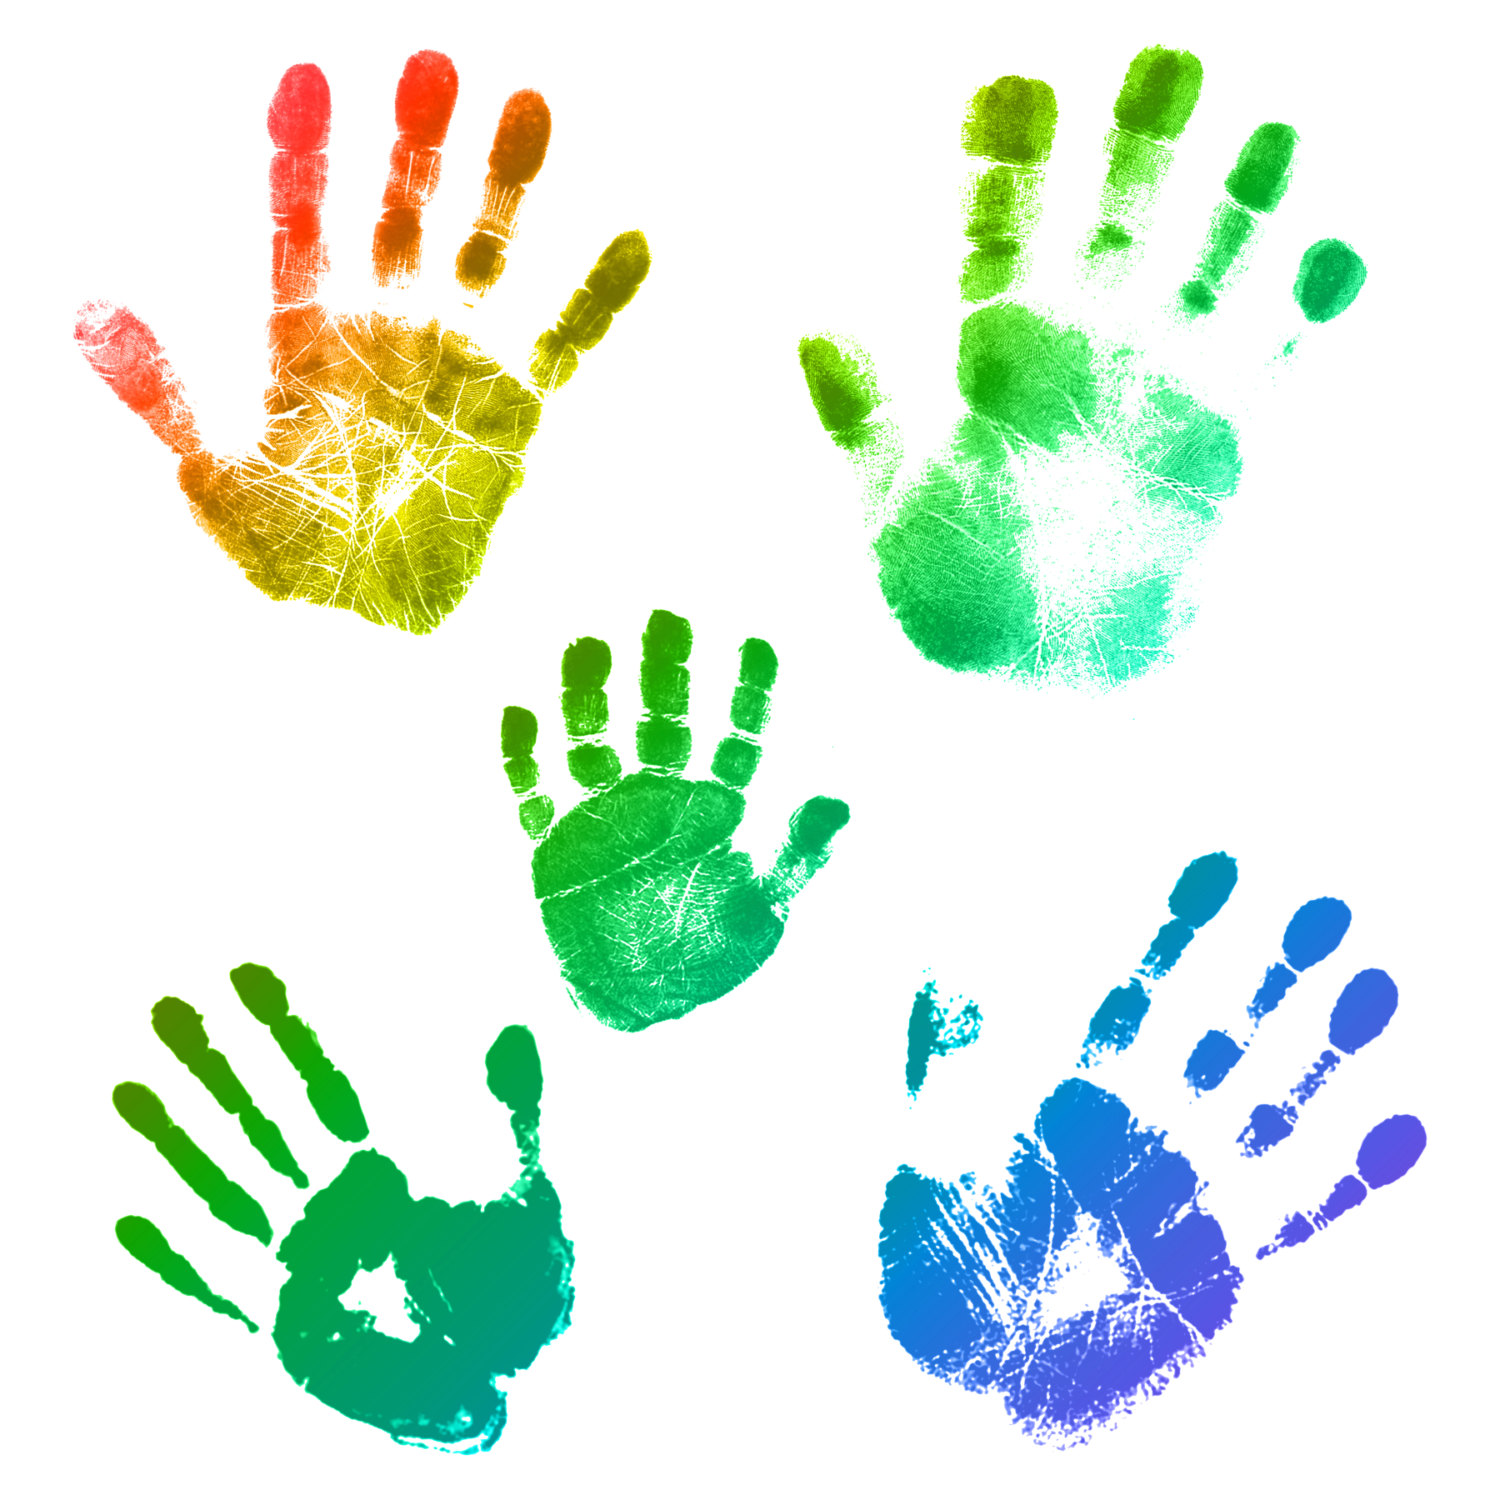 Photoshop clipart hand Commercial Brushes Photoshop Brushes Clipart